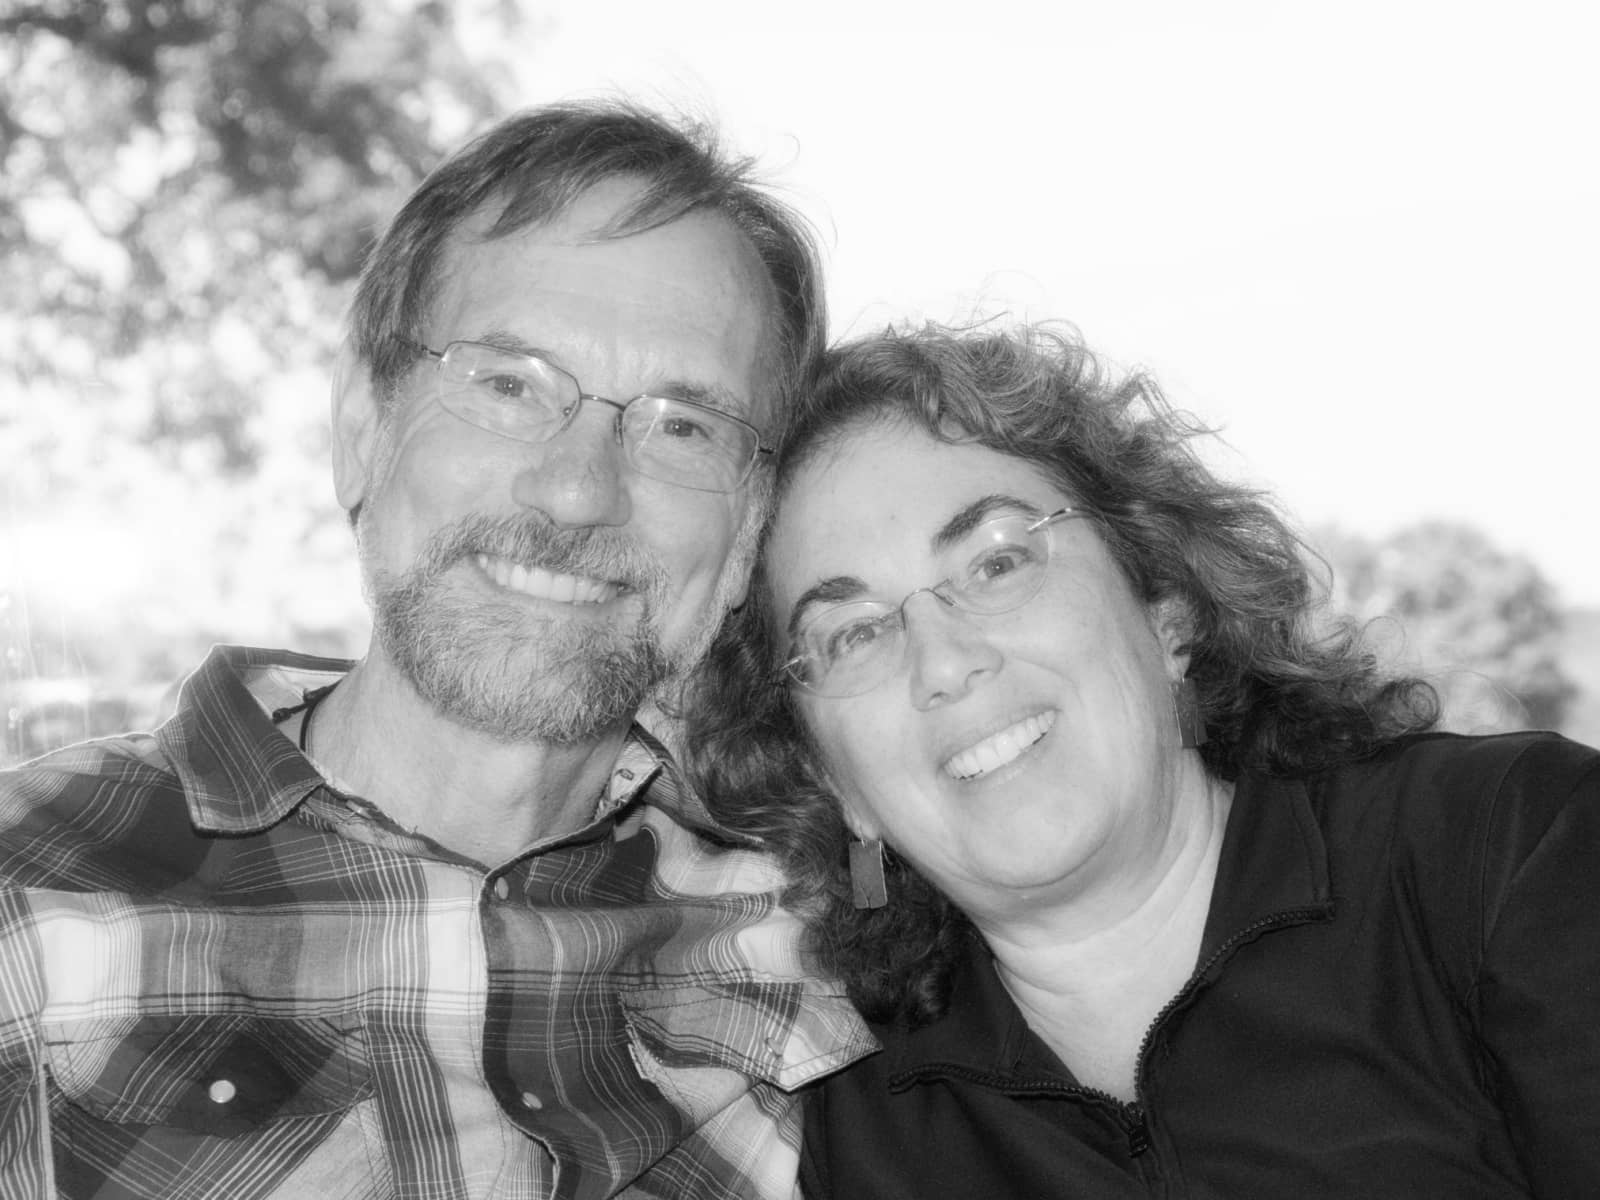 Ron & Hildy from Corning, New York, United States